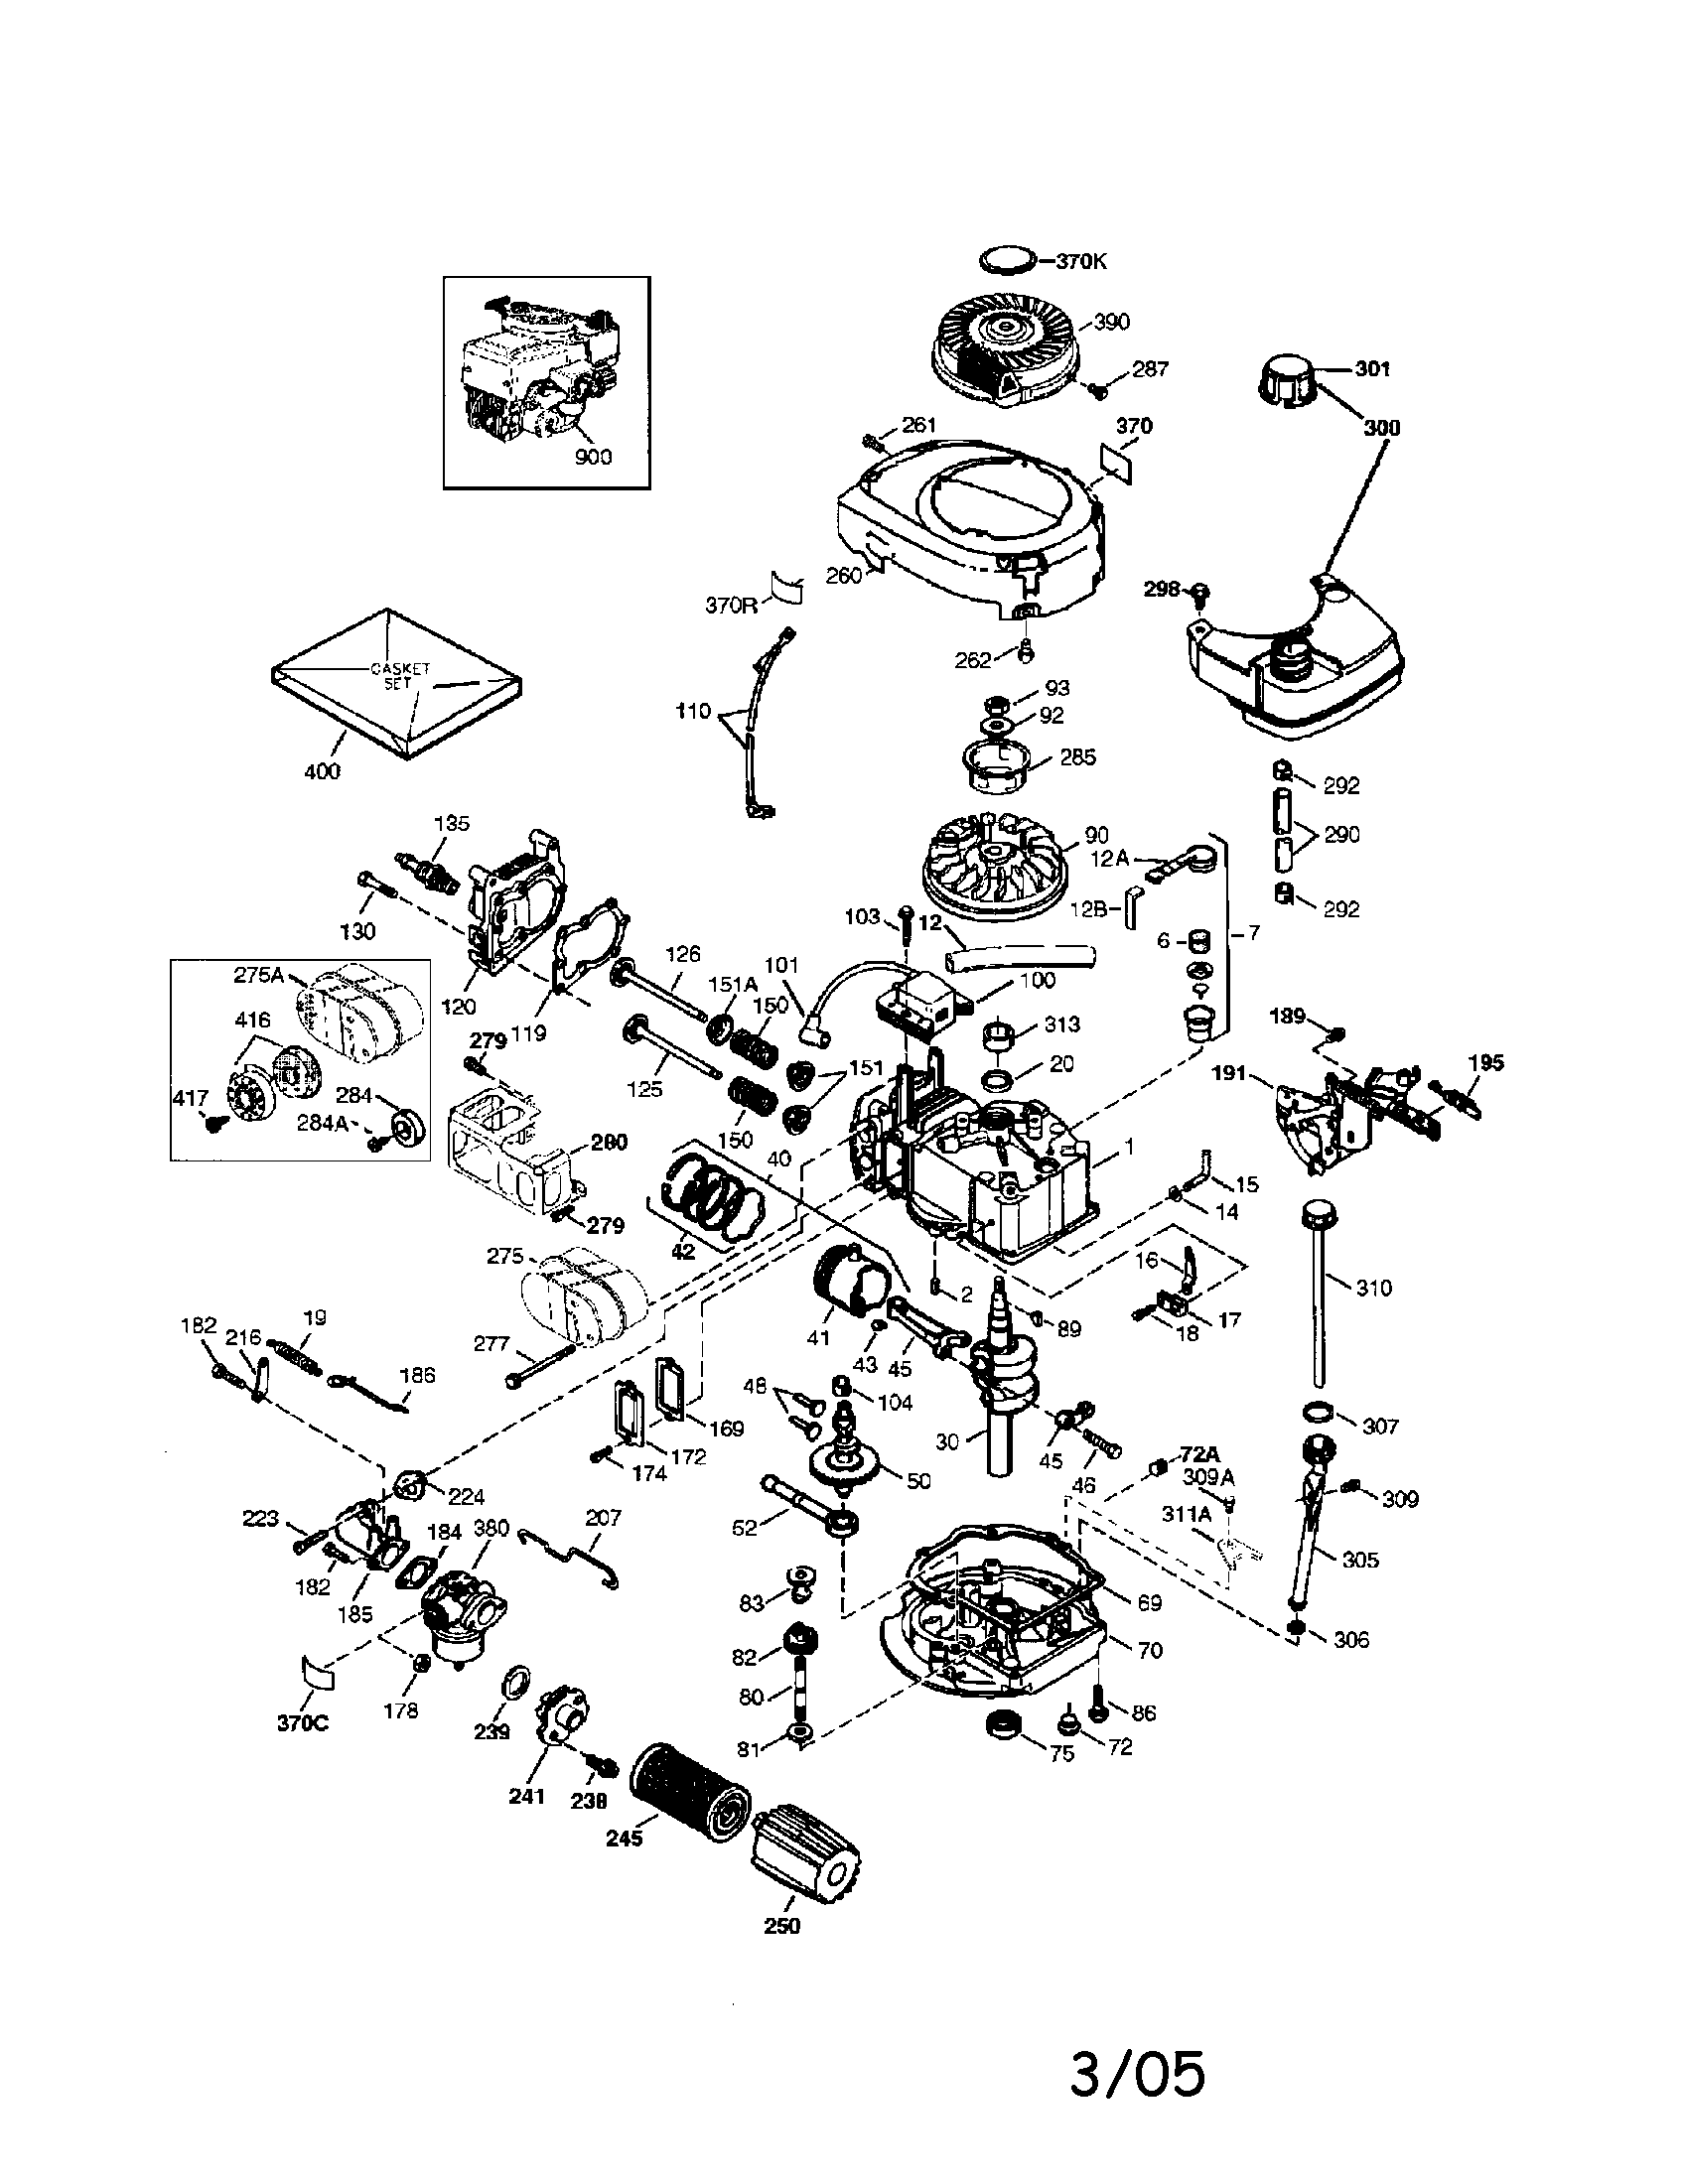 hight resolution of craftsman tecumseh engine parts model 143044500 sears partsdirect rh searspartsdirect com tecumseh engine diagram carburetor tecumseh engine diagrams 0hh60